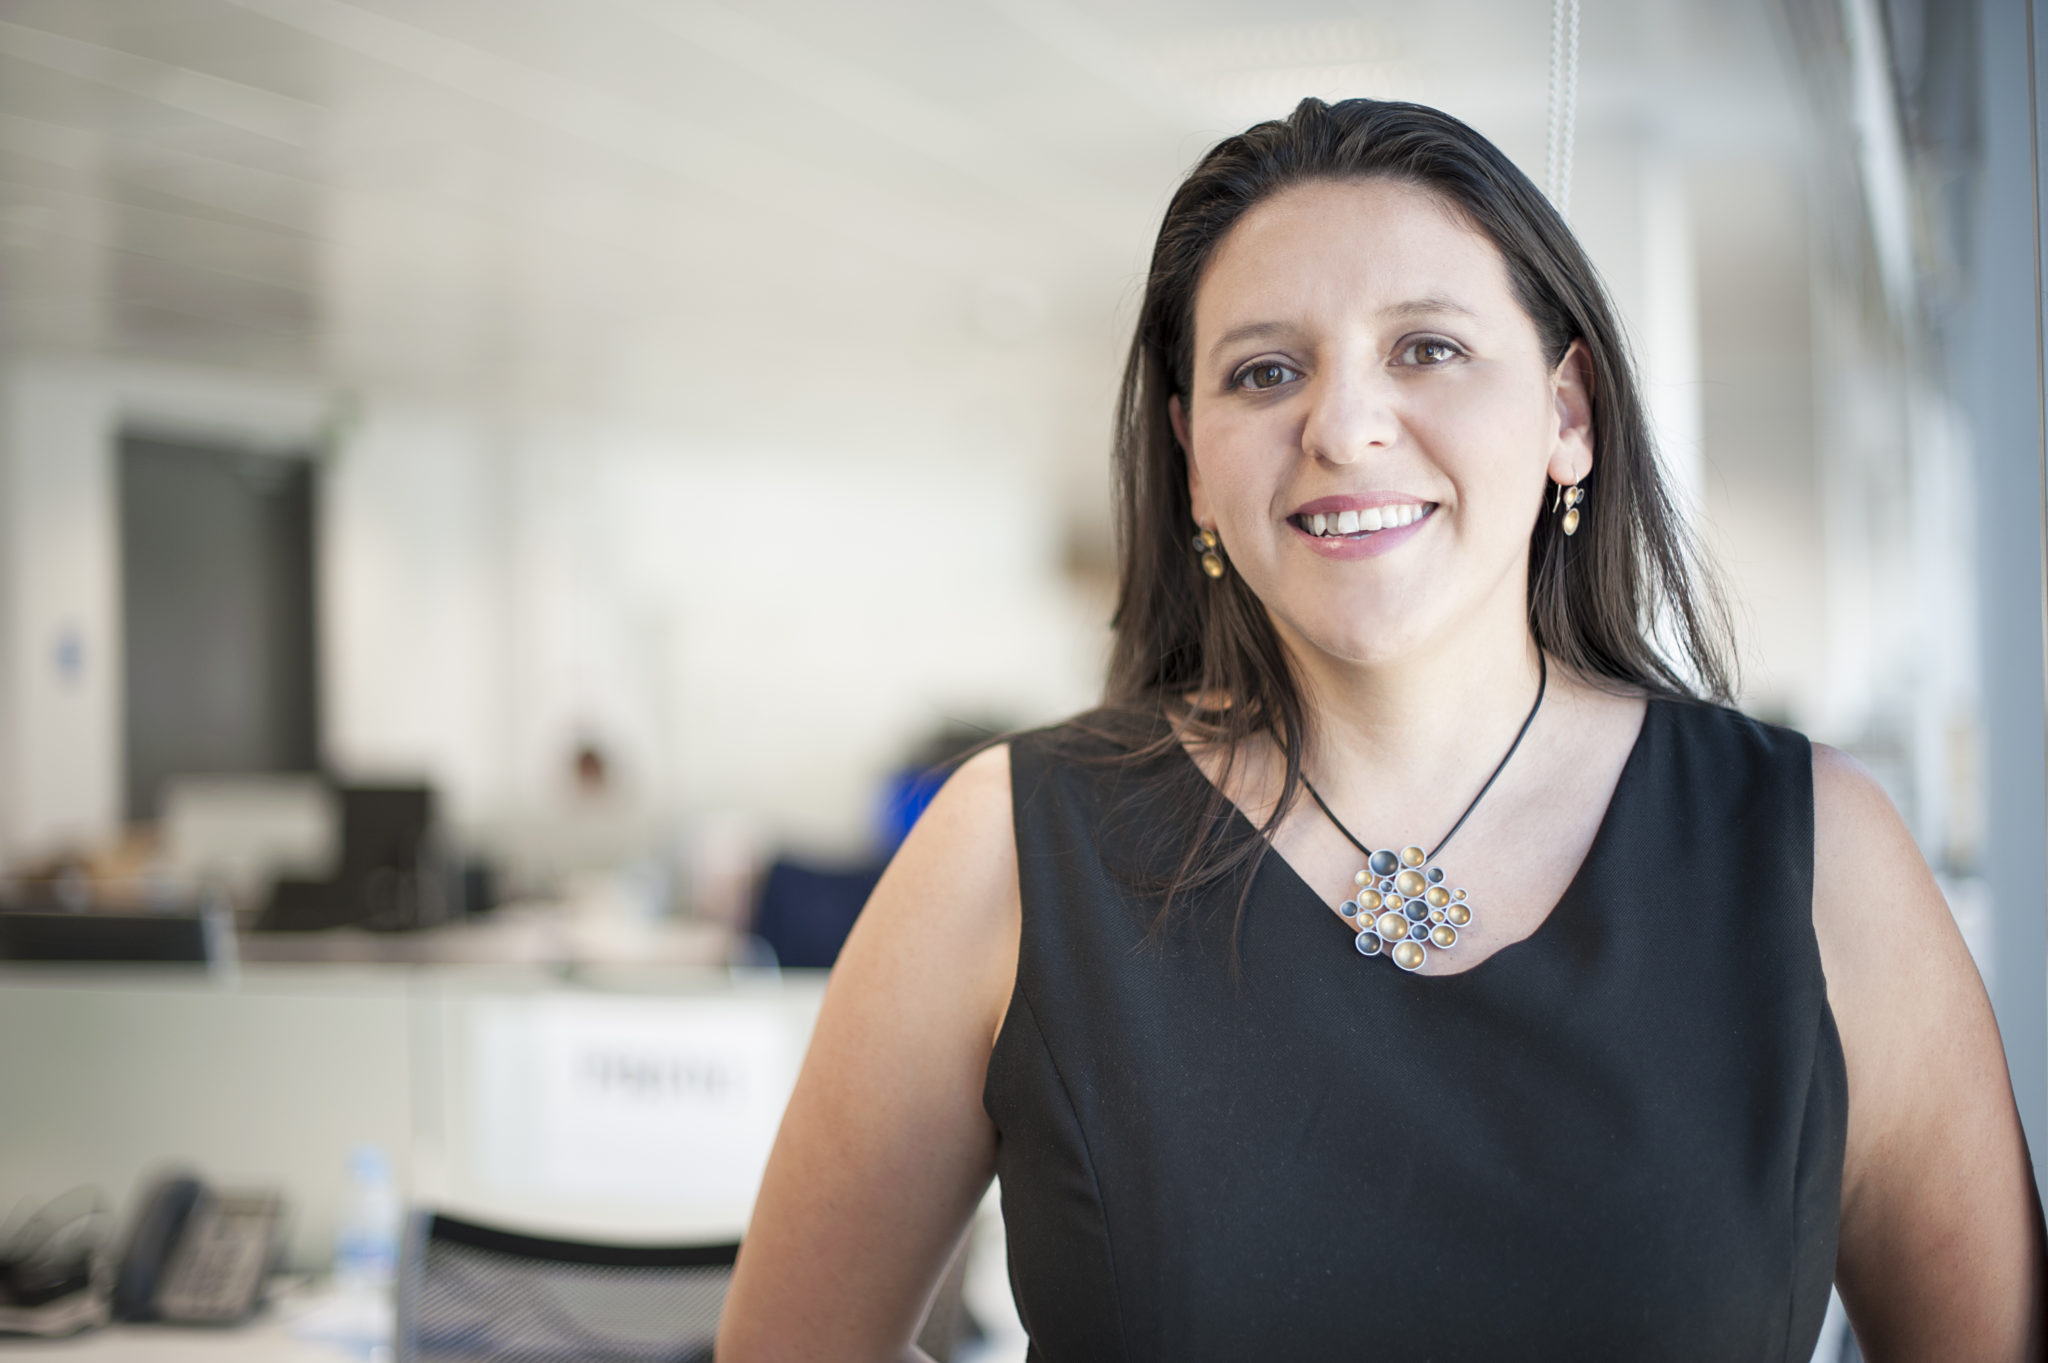 Insights From One of the Best Bank Innovation Programs (Interview With Marisol Menéndez)